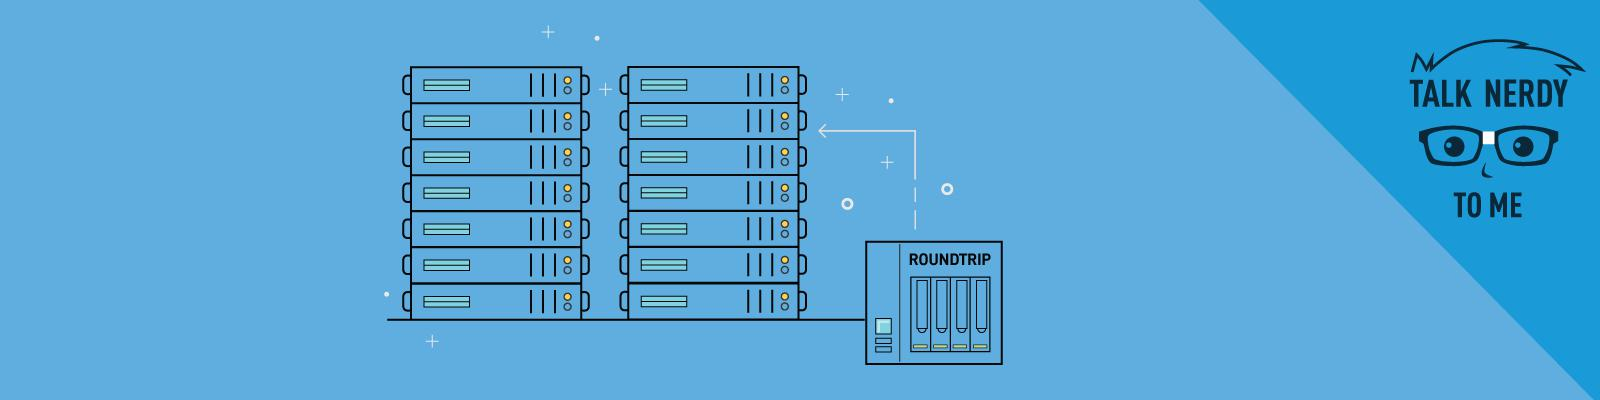 Talk Nerdy to Me: The Datto RoundTrip